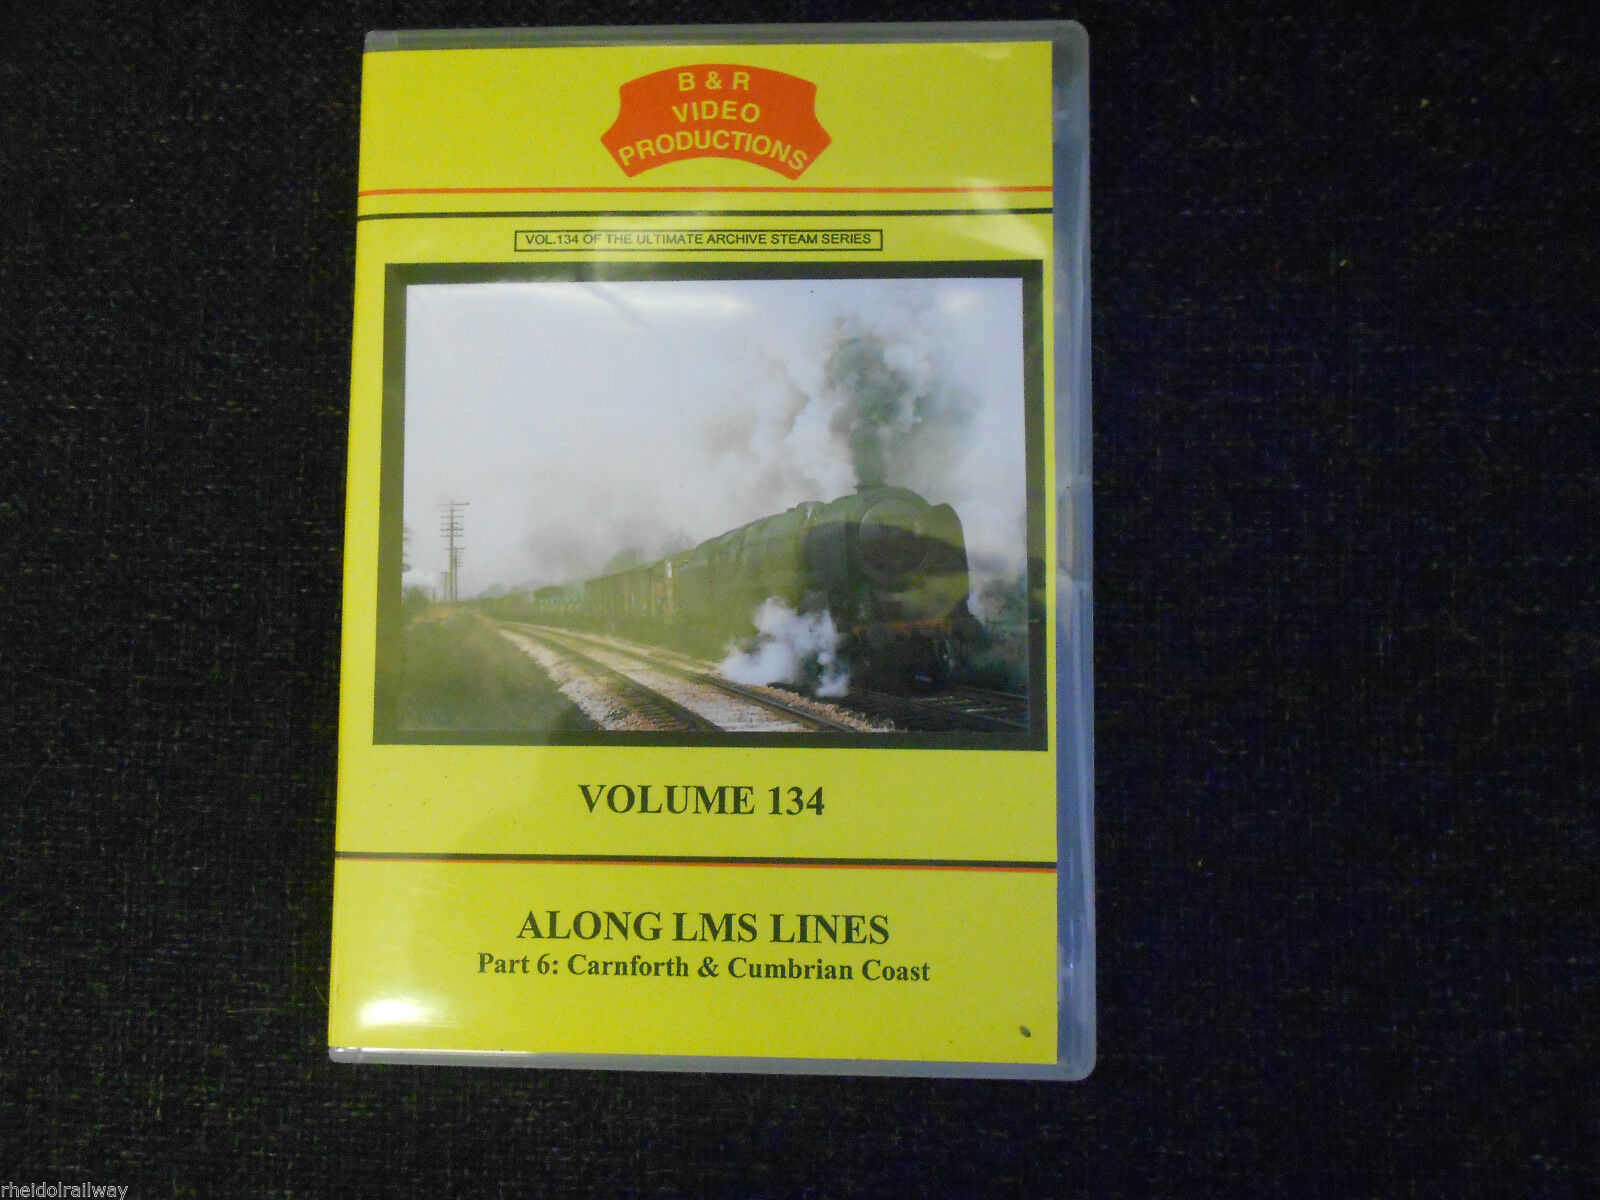 Tebay, Shap, Along LMS Lines Pt 6, Carnforth & Cumbrian Coast B&R Vol 134 DVD